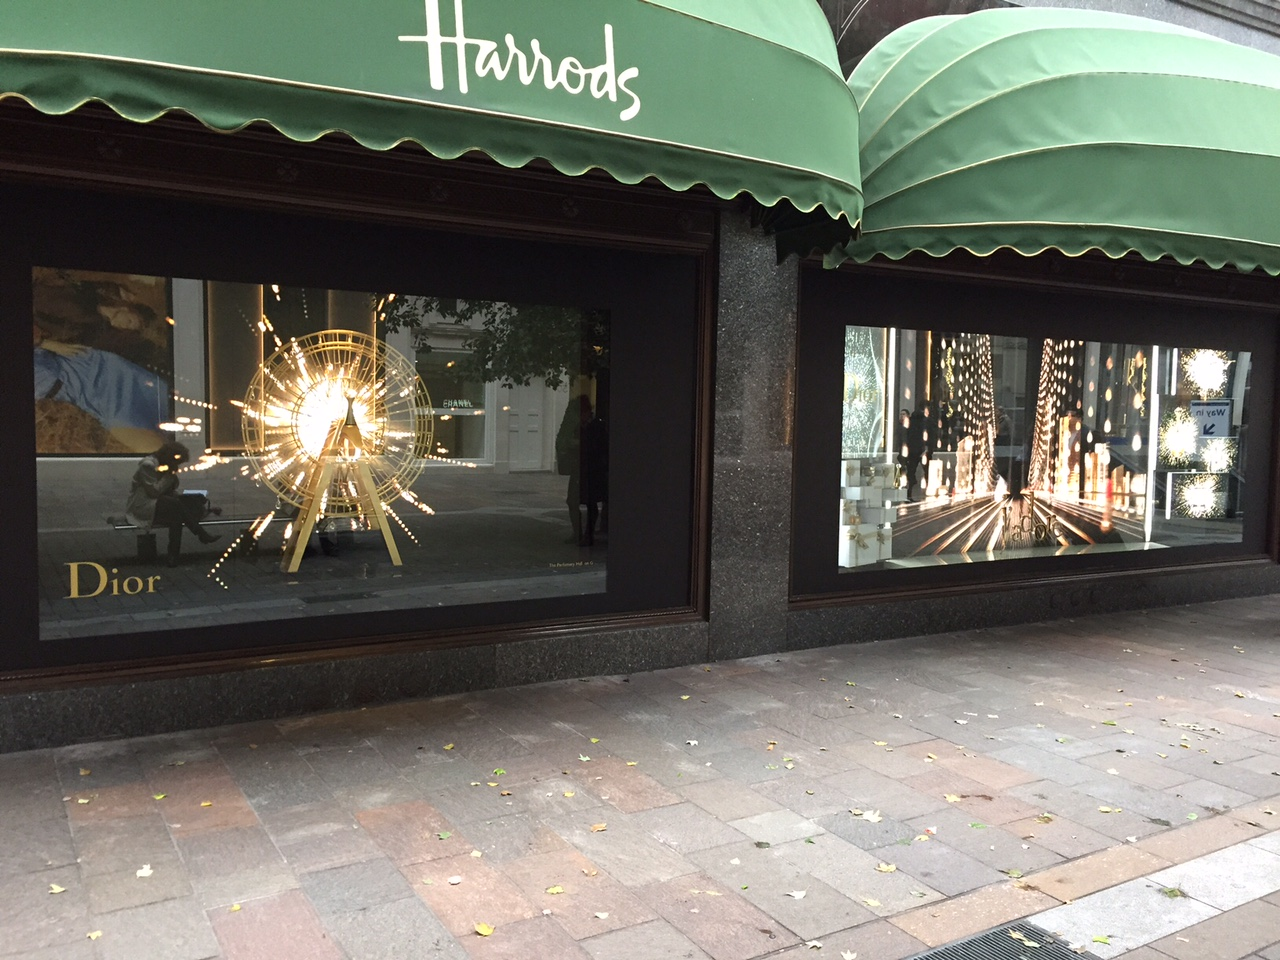 Harrods Teams Up With Dior For Store Takeover Harrods Teams Up With Dior For Store Takeover new pictures